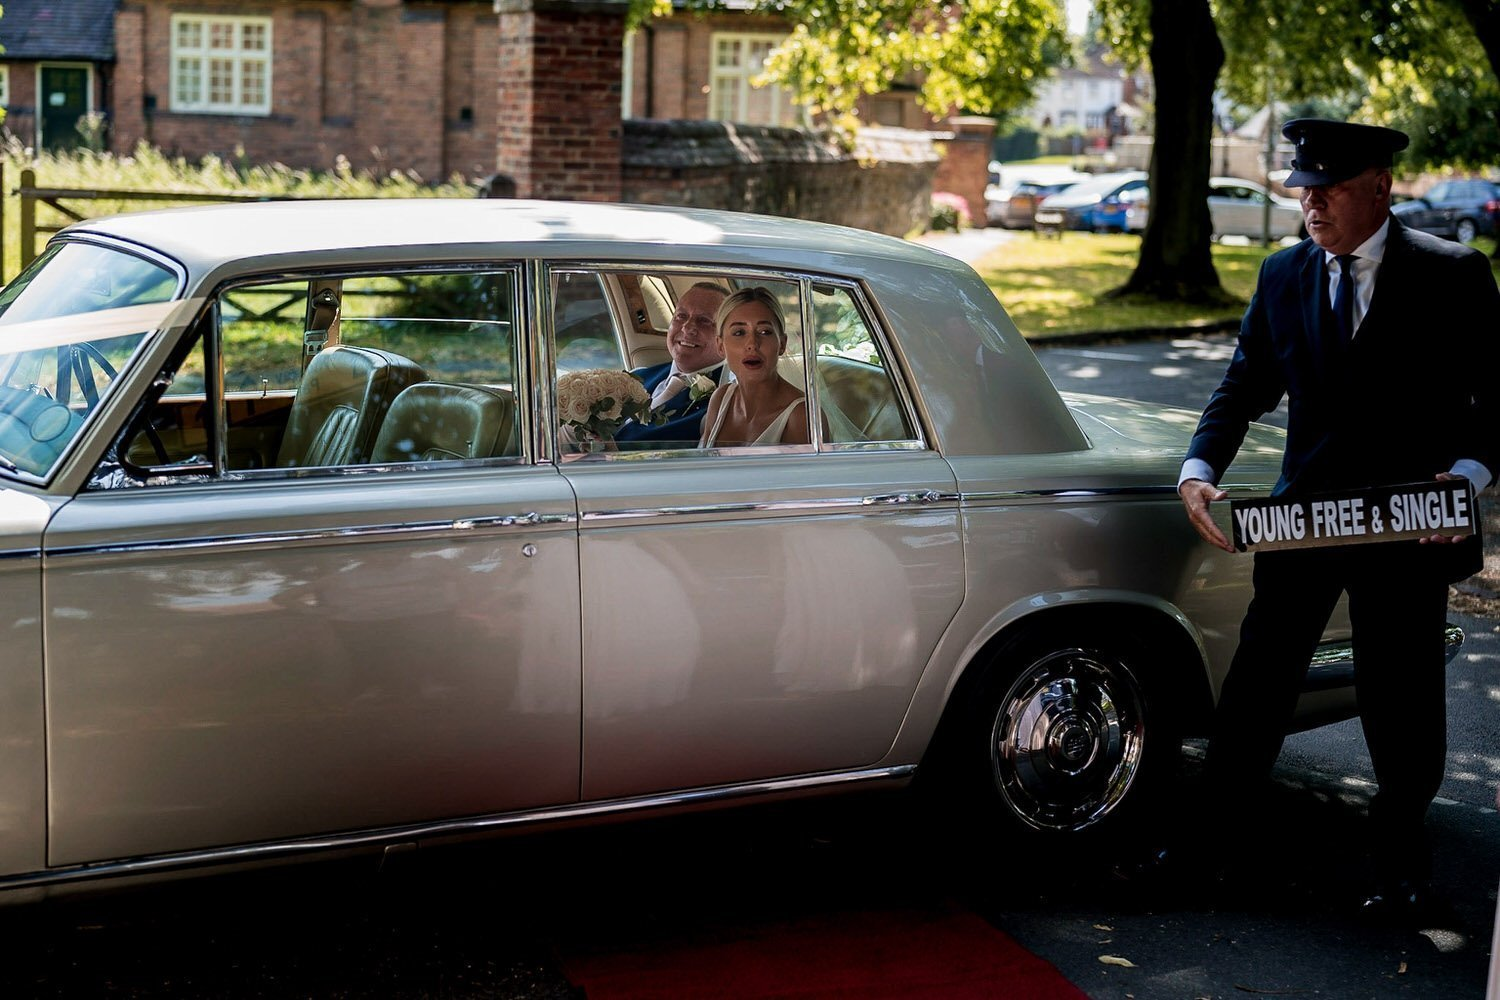 Great Bowden Parish Church Lockwood Weddings Photography bride and father waiting in the wedding car before her wedding ceremony